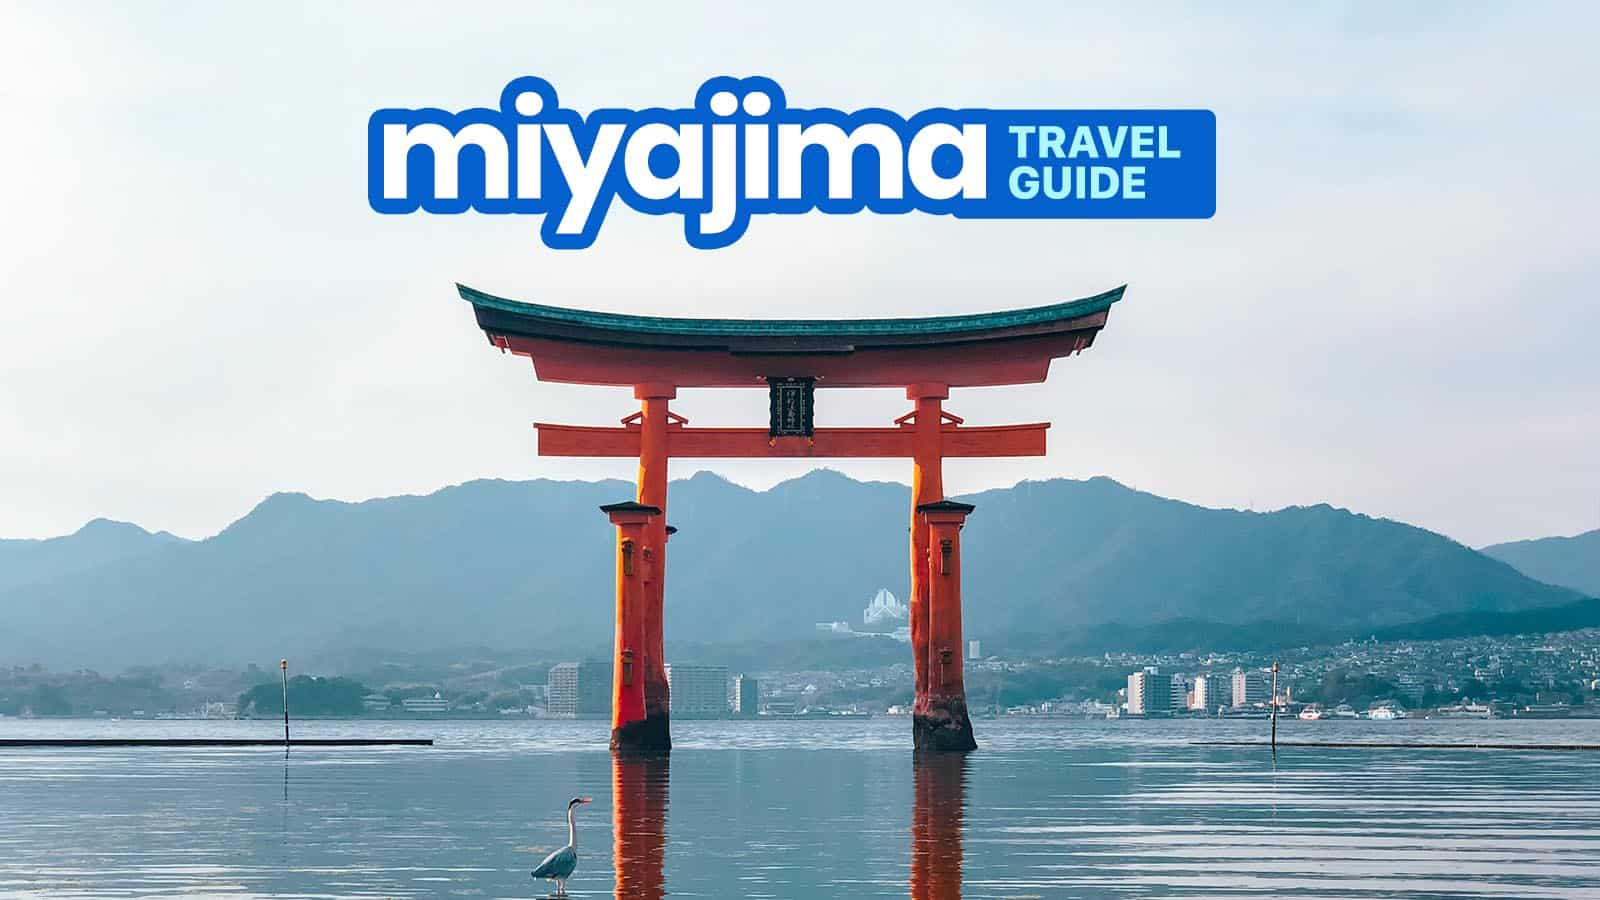 MIYAJIMA TRAVEL GUIDE with Budget Itinerary 2019 The Poor 1600x900